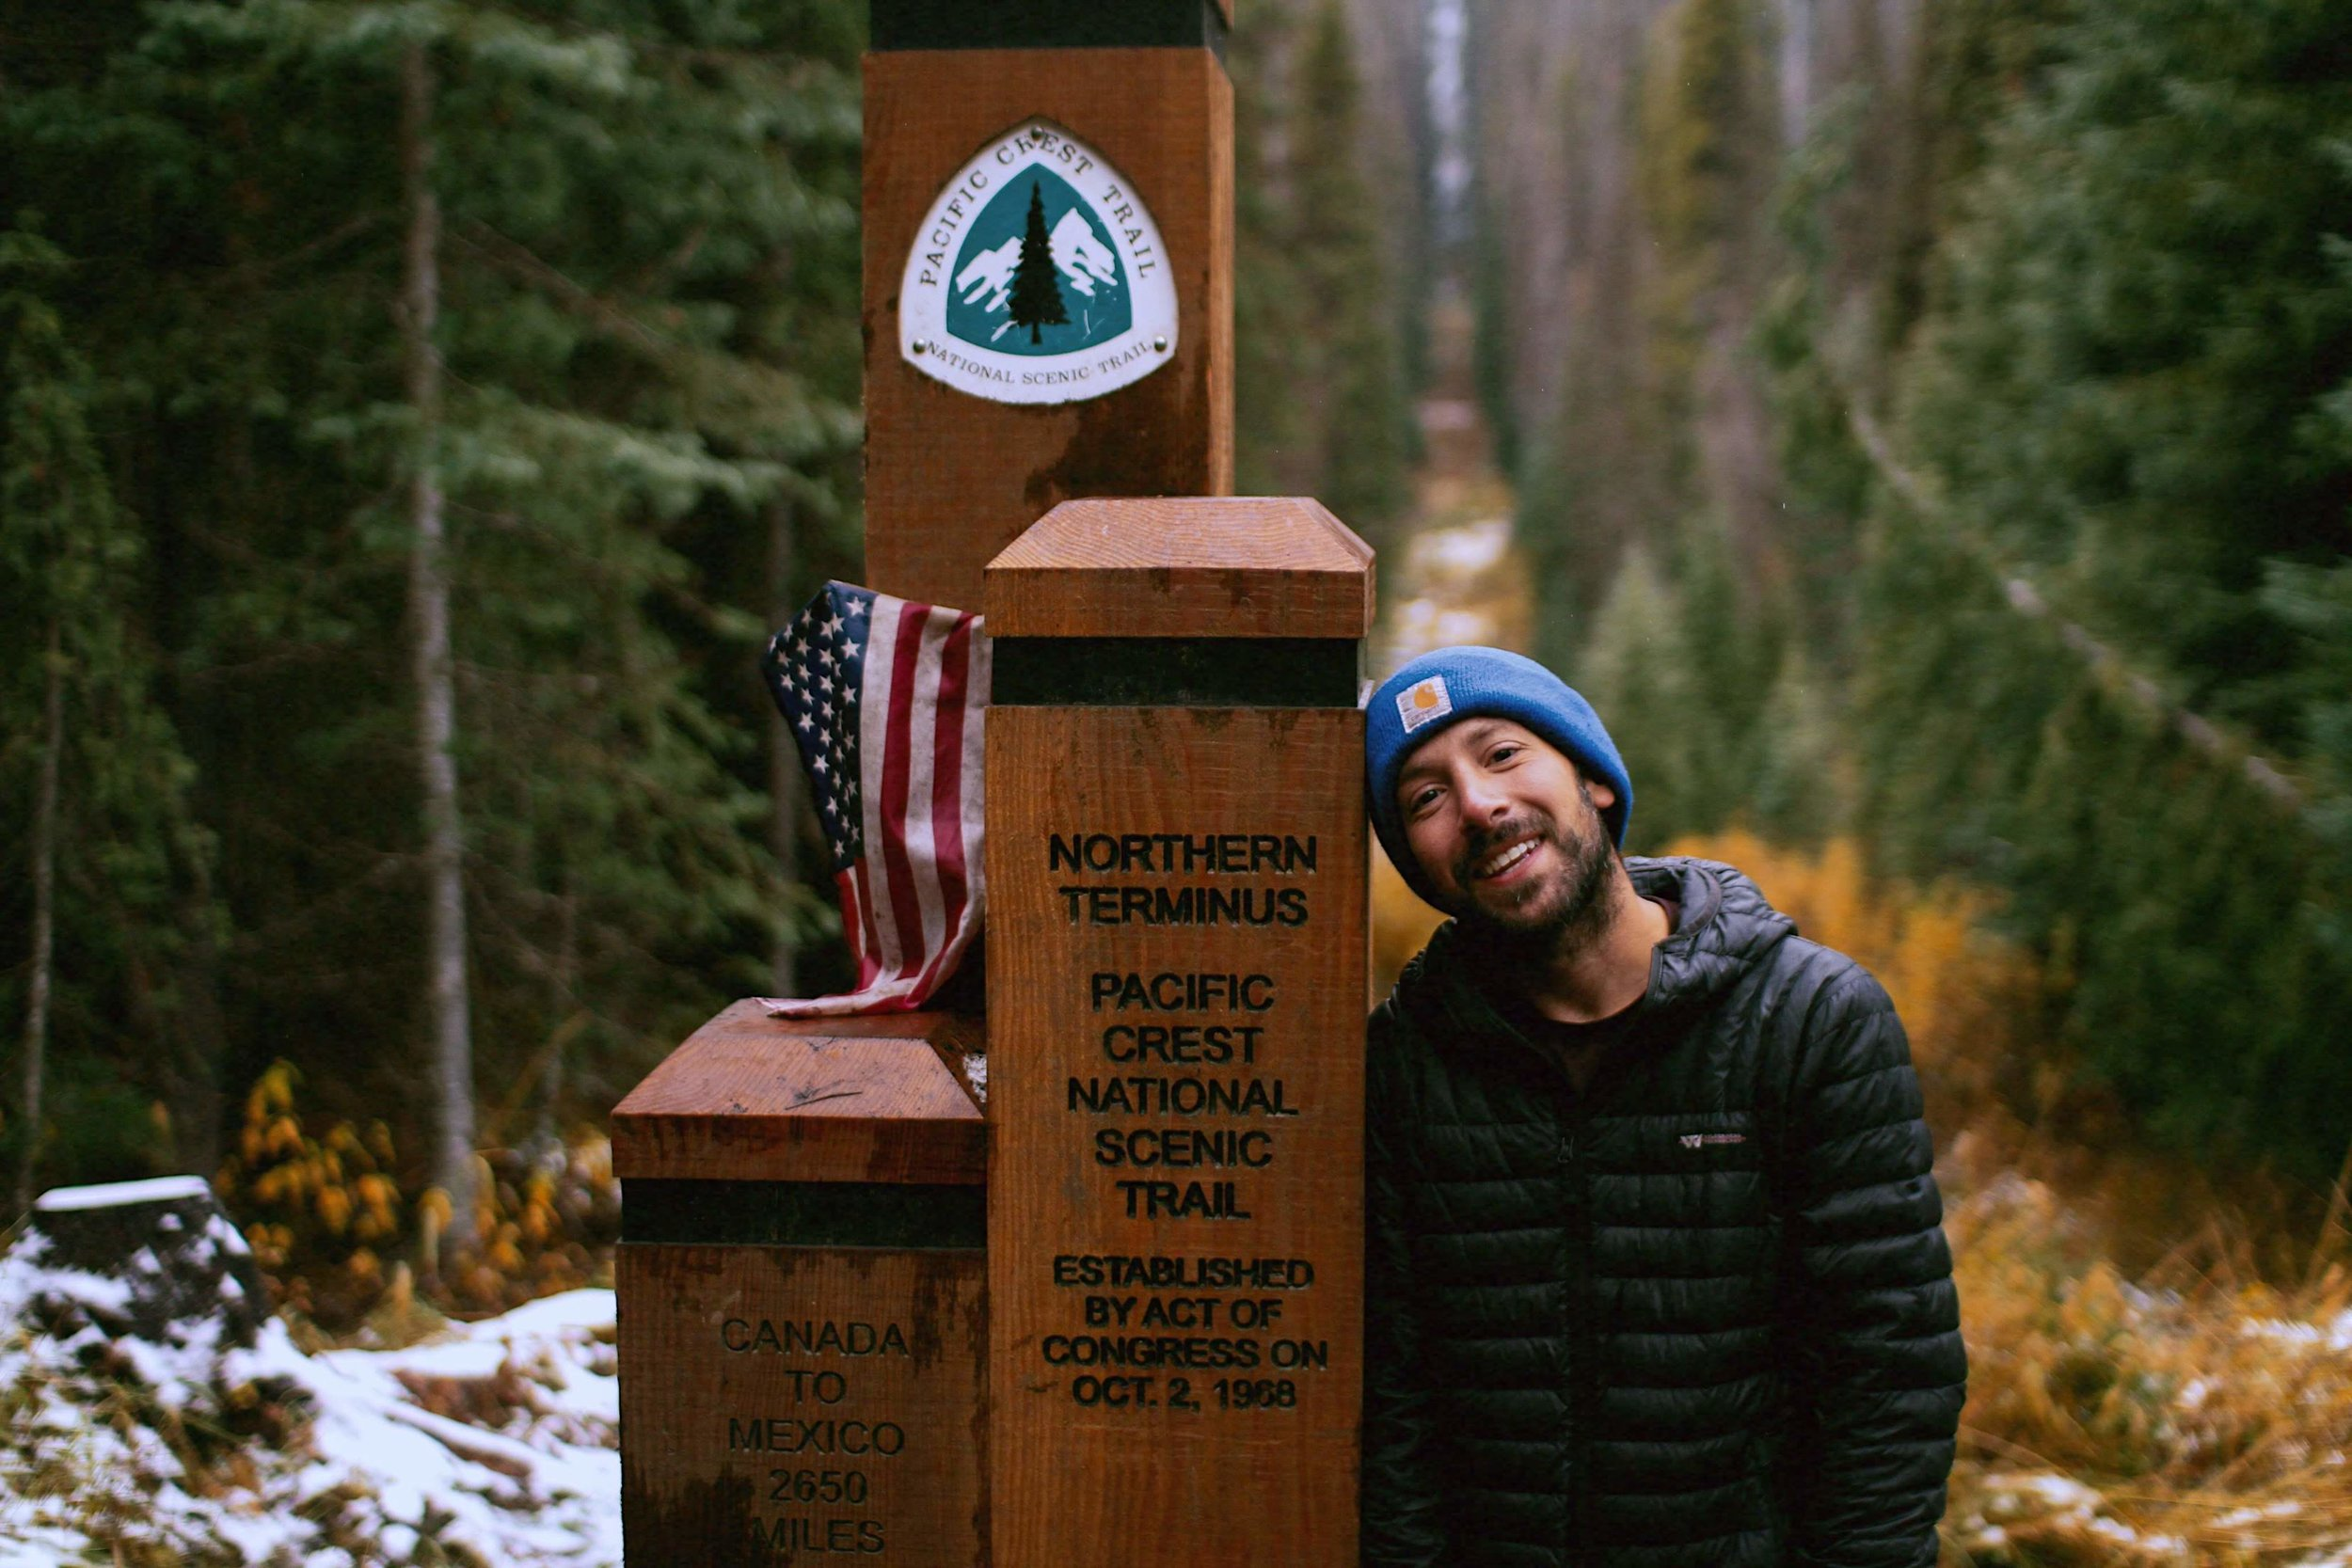 Oct. 5th, 2018 - My finish photo at the Northern Terminus of the Pacific Crest Trail.